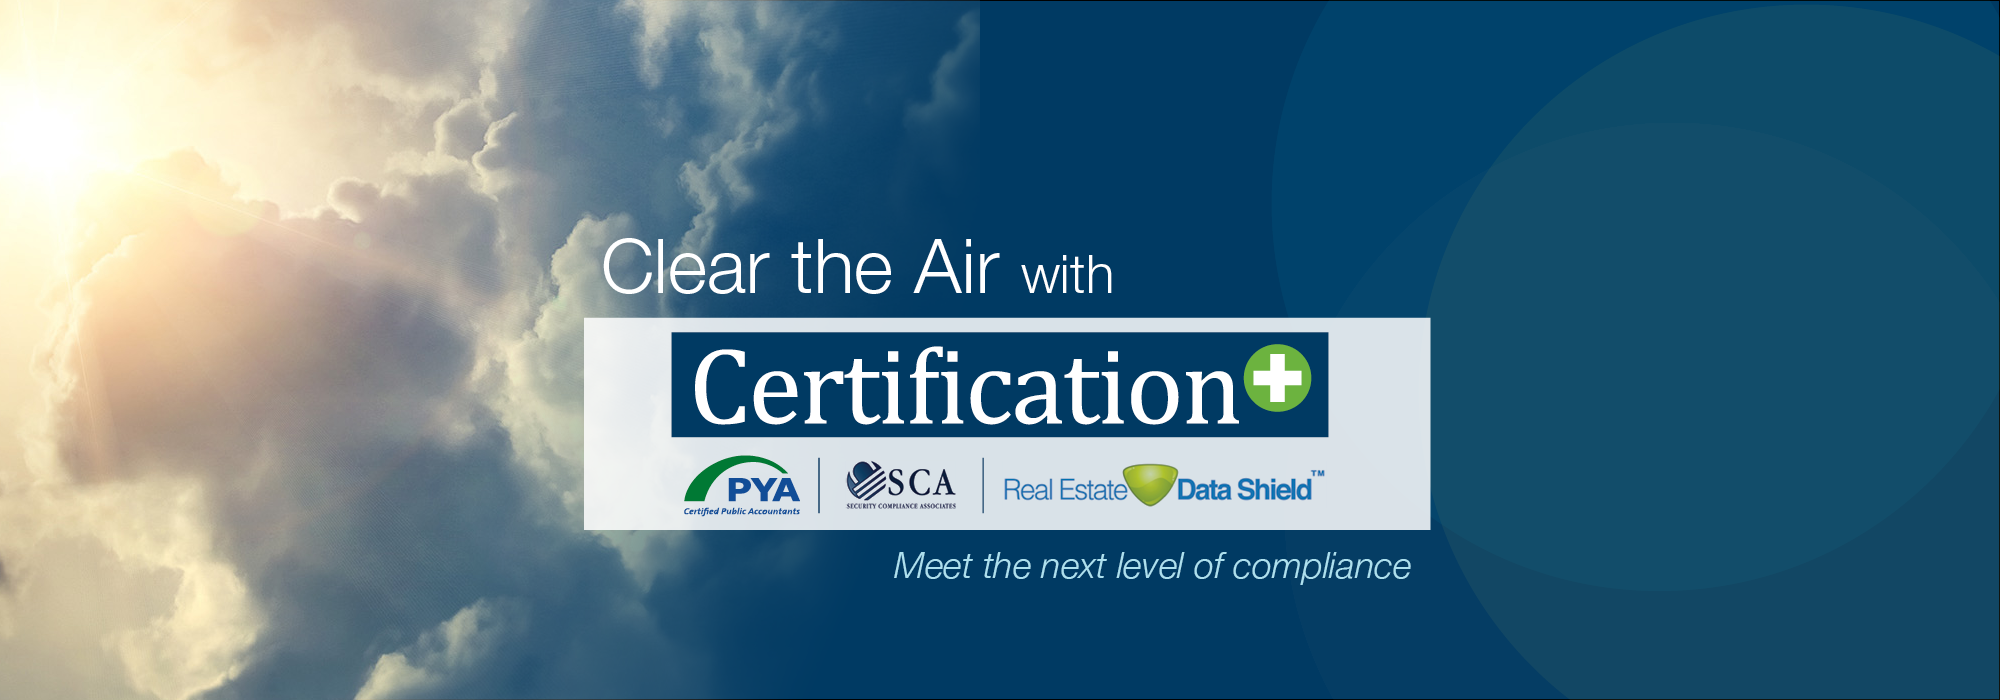 Certification Plus Slider